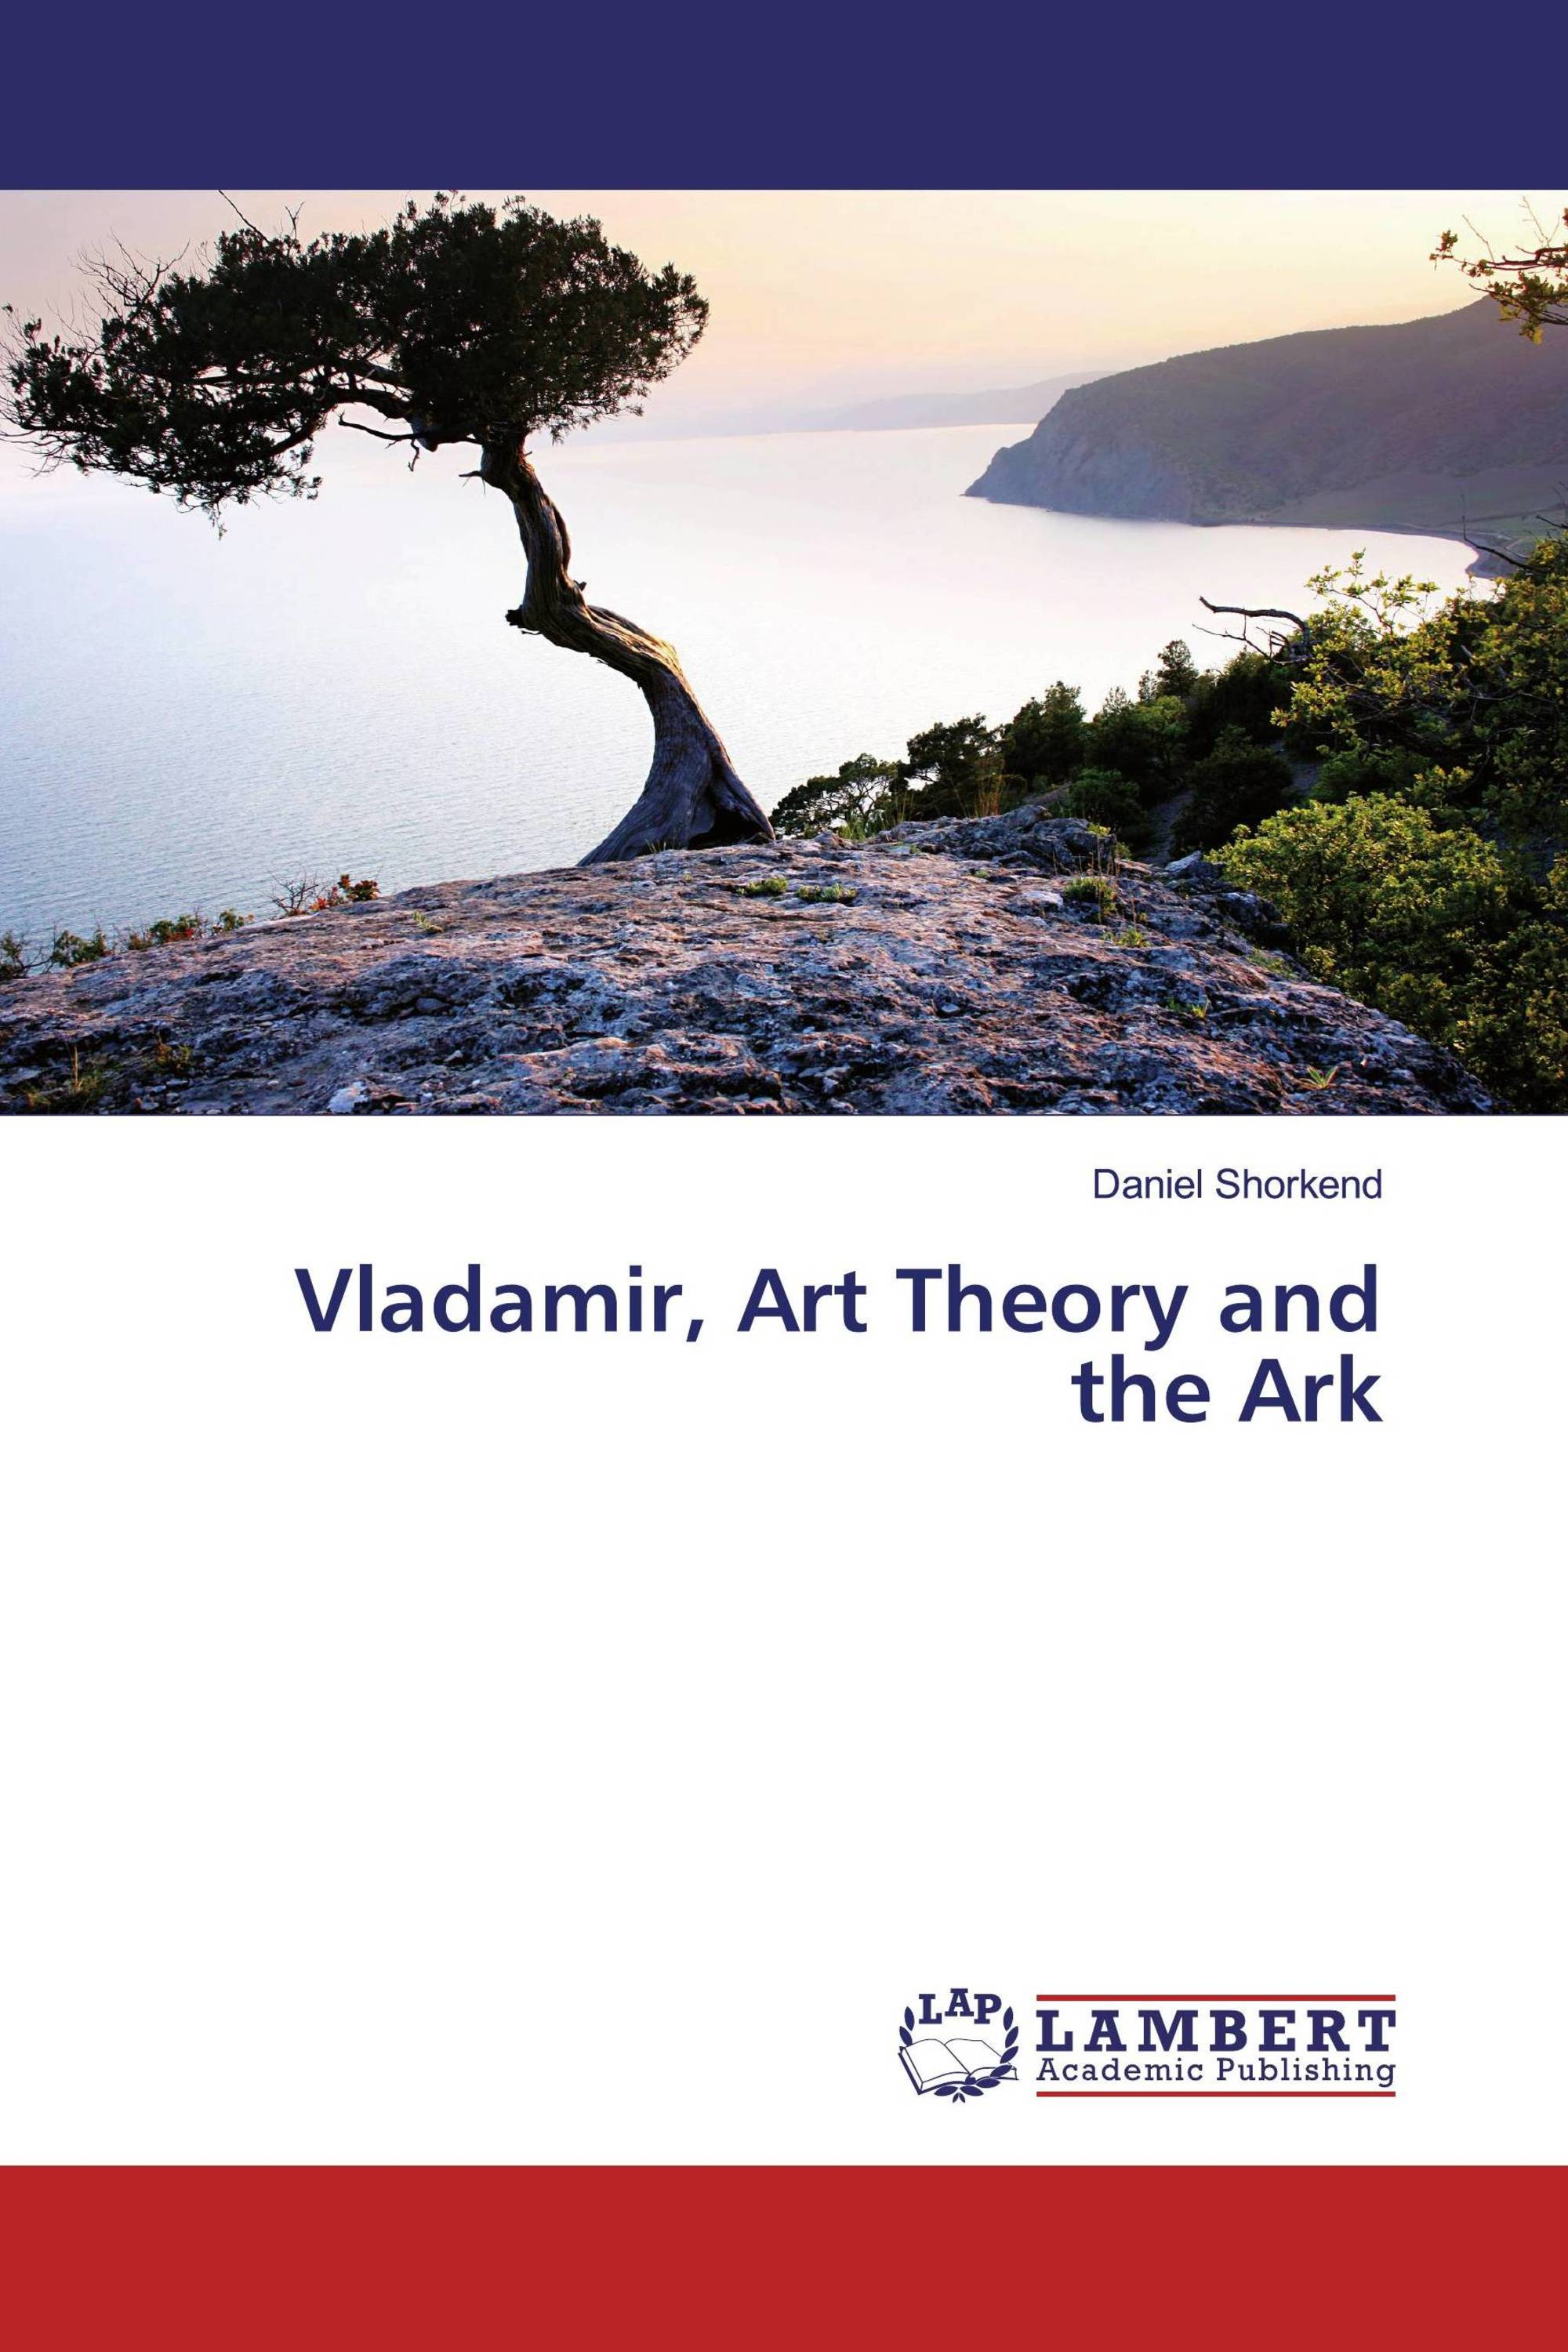 Vladamir, Art Theory and the Ark